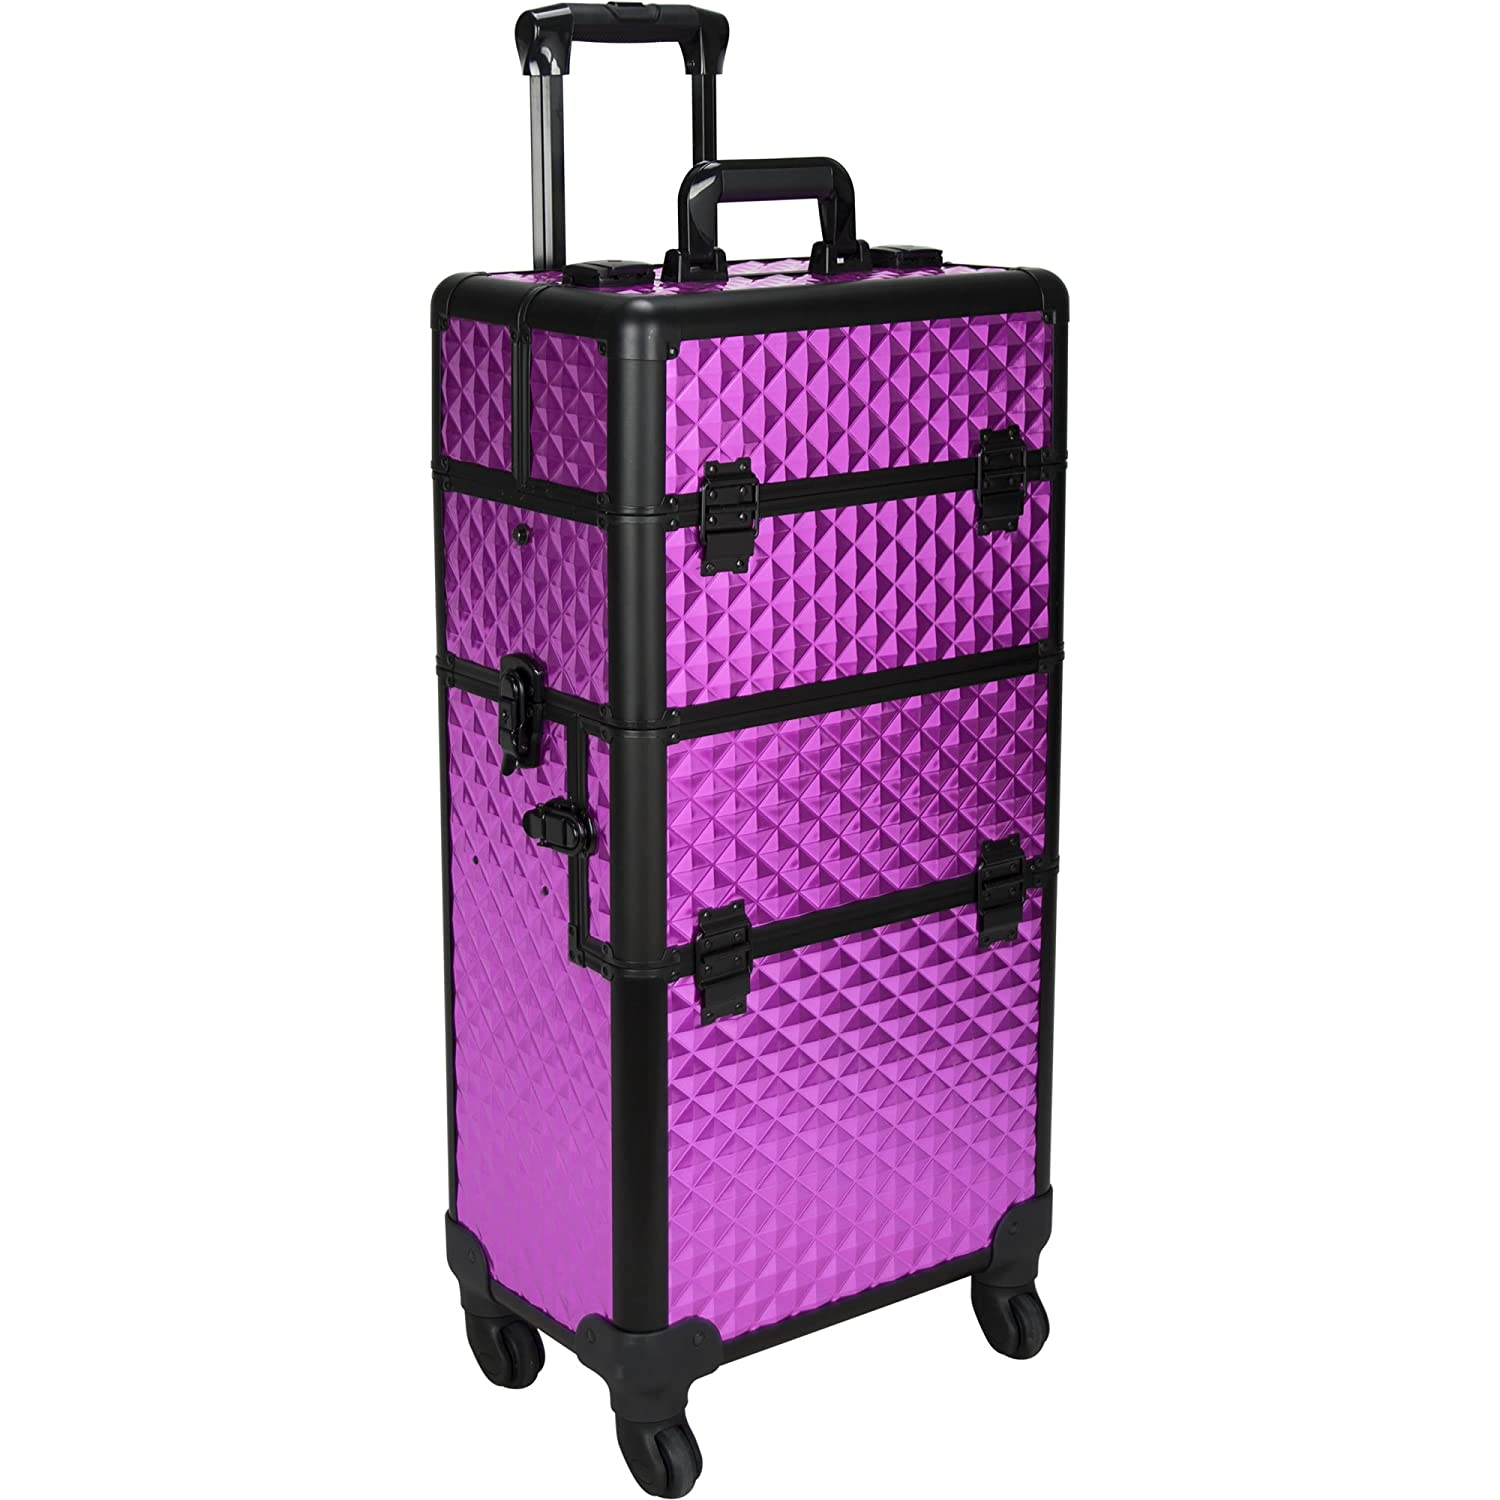 SUNRISE Makeup Case on Wheels 2 in 1 Professional Artist Organizer I3161, 4 Slide and 1 Removable Tray, 4 Wheel Spinner, Purple Diamond